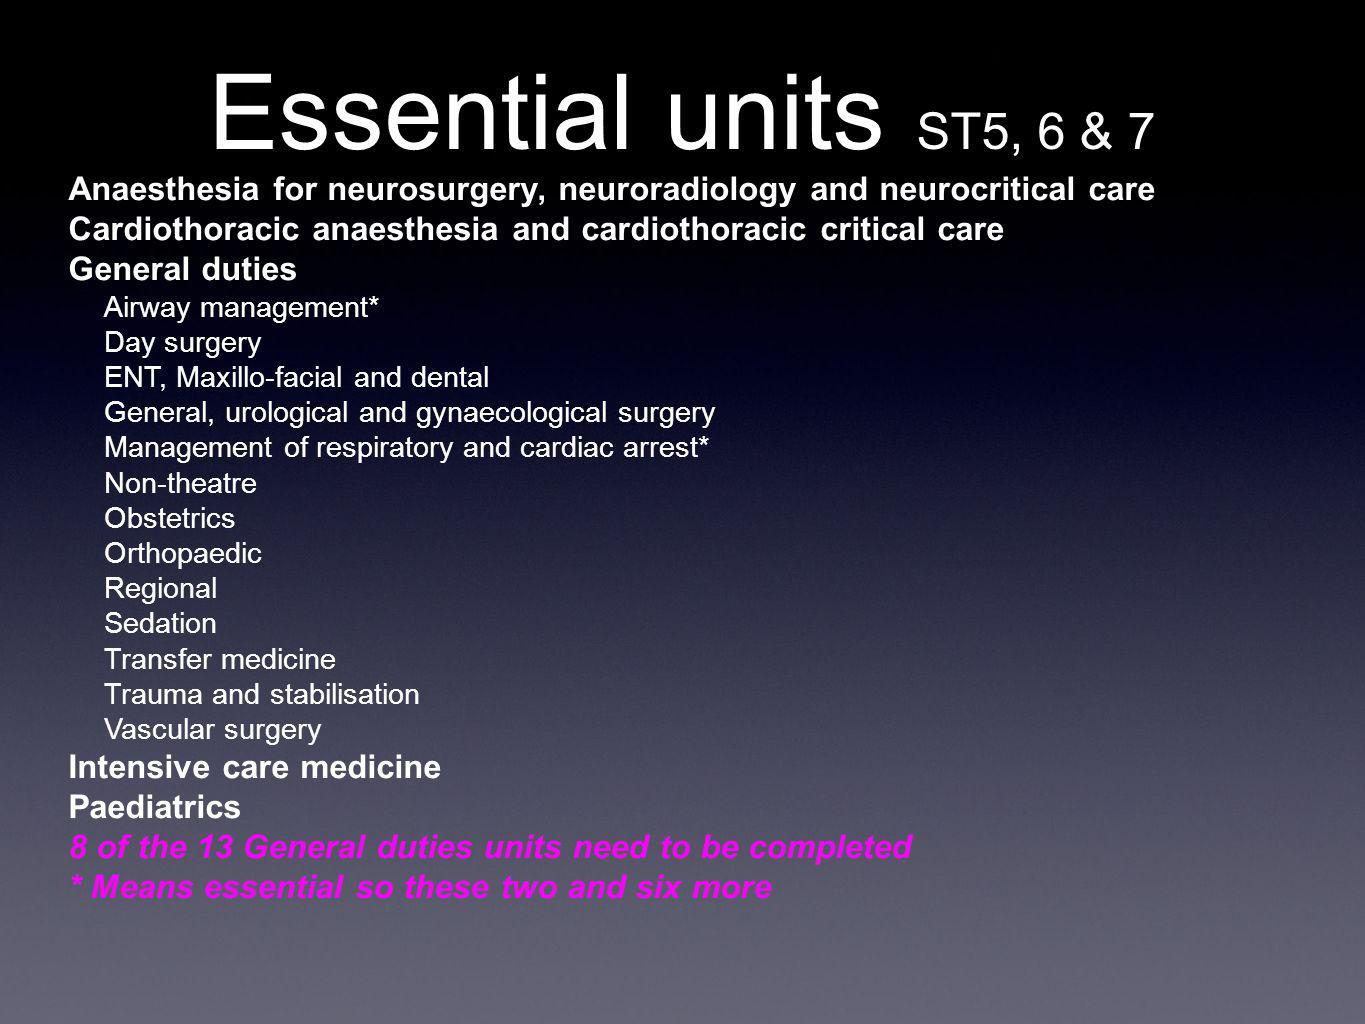 Anaesthesia for neurosurgery, neuroradiology and neurocritical care Cardiothoracic anaesthesia and cardiothoracic critical care General duties Airway management* Day surgery ENT, Maxillo-facial and dental General, urological and gynaecological surgery Management of respiratory and cardiac arrest* Non-theatre Obstetrics Orthopaedic Regional Sedation Transfer medicine Trauma and stabilisation Vascular surgery Intensive care medicine Paediatrics 8 of the 13 General duties units need to be completed * Means essential so these two and six more Essential units ST5, 6 & 7